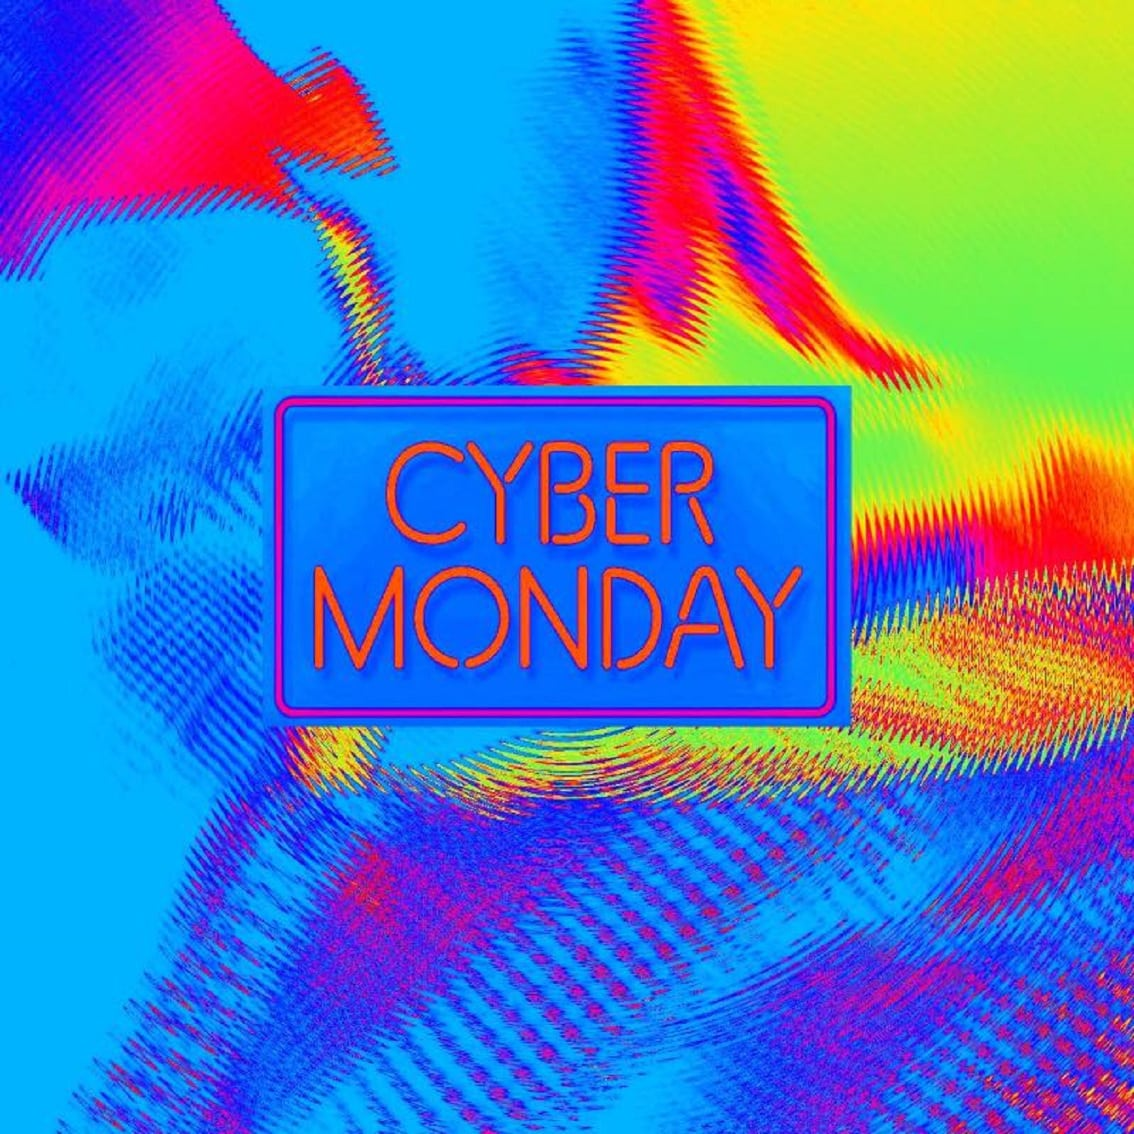 UK synth pop act Cyber Monday launches new album'Store Debit' - also available on USB !